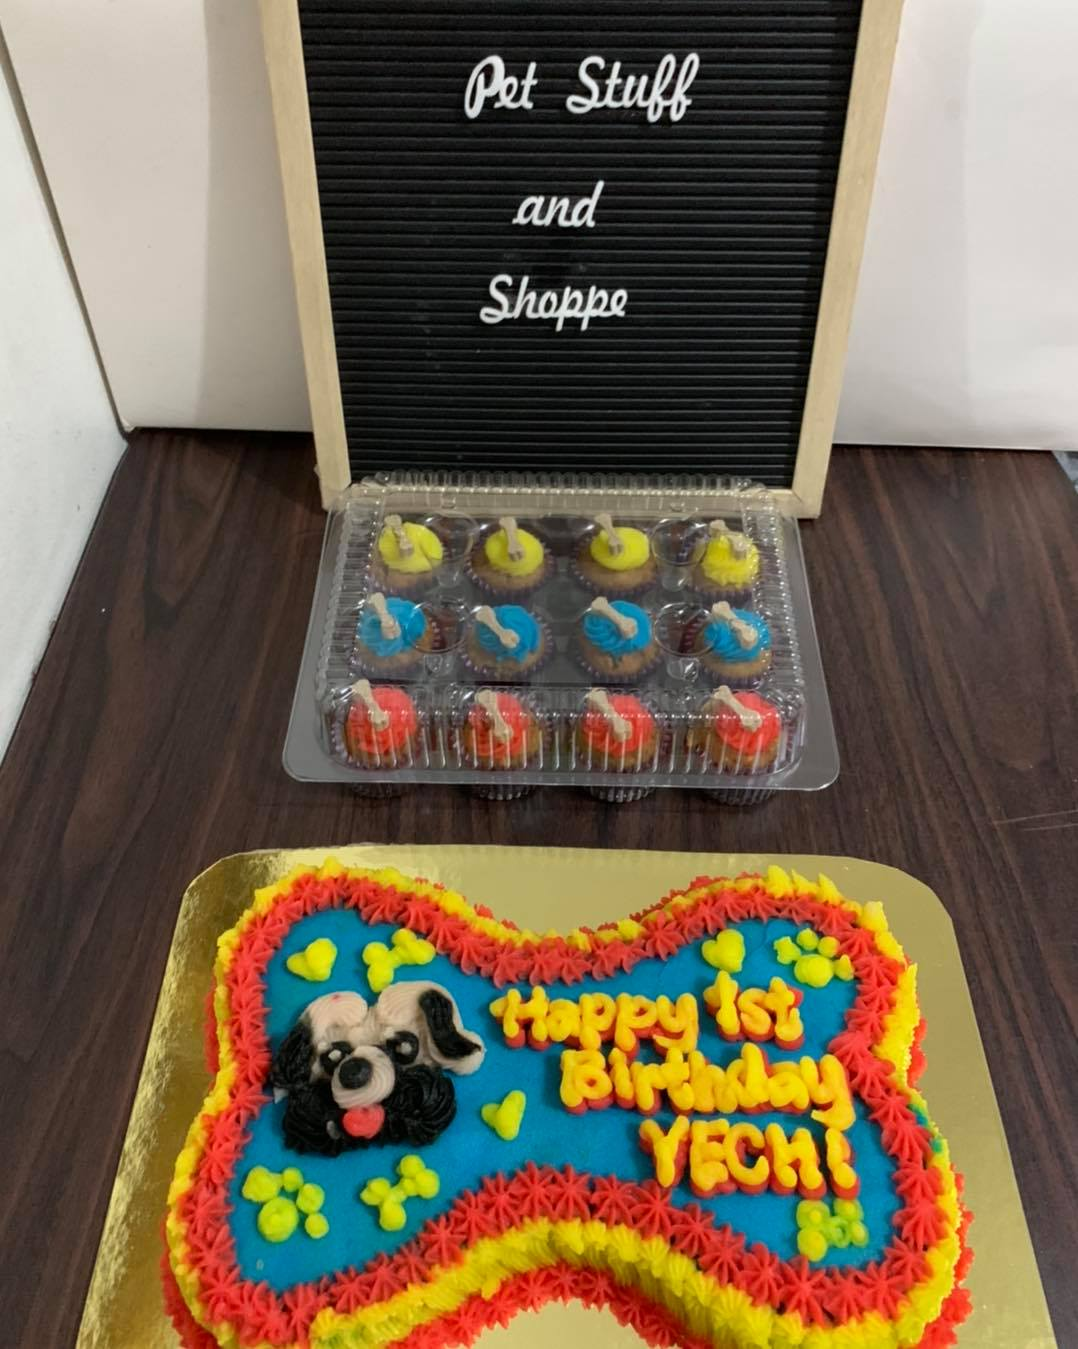 dog cakes and cupcakes by Pet Stuff and Shoppe